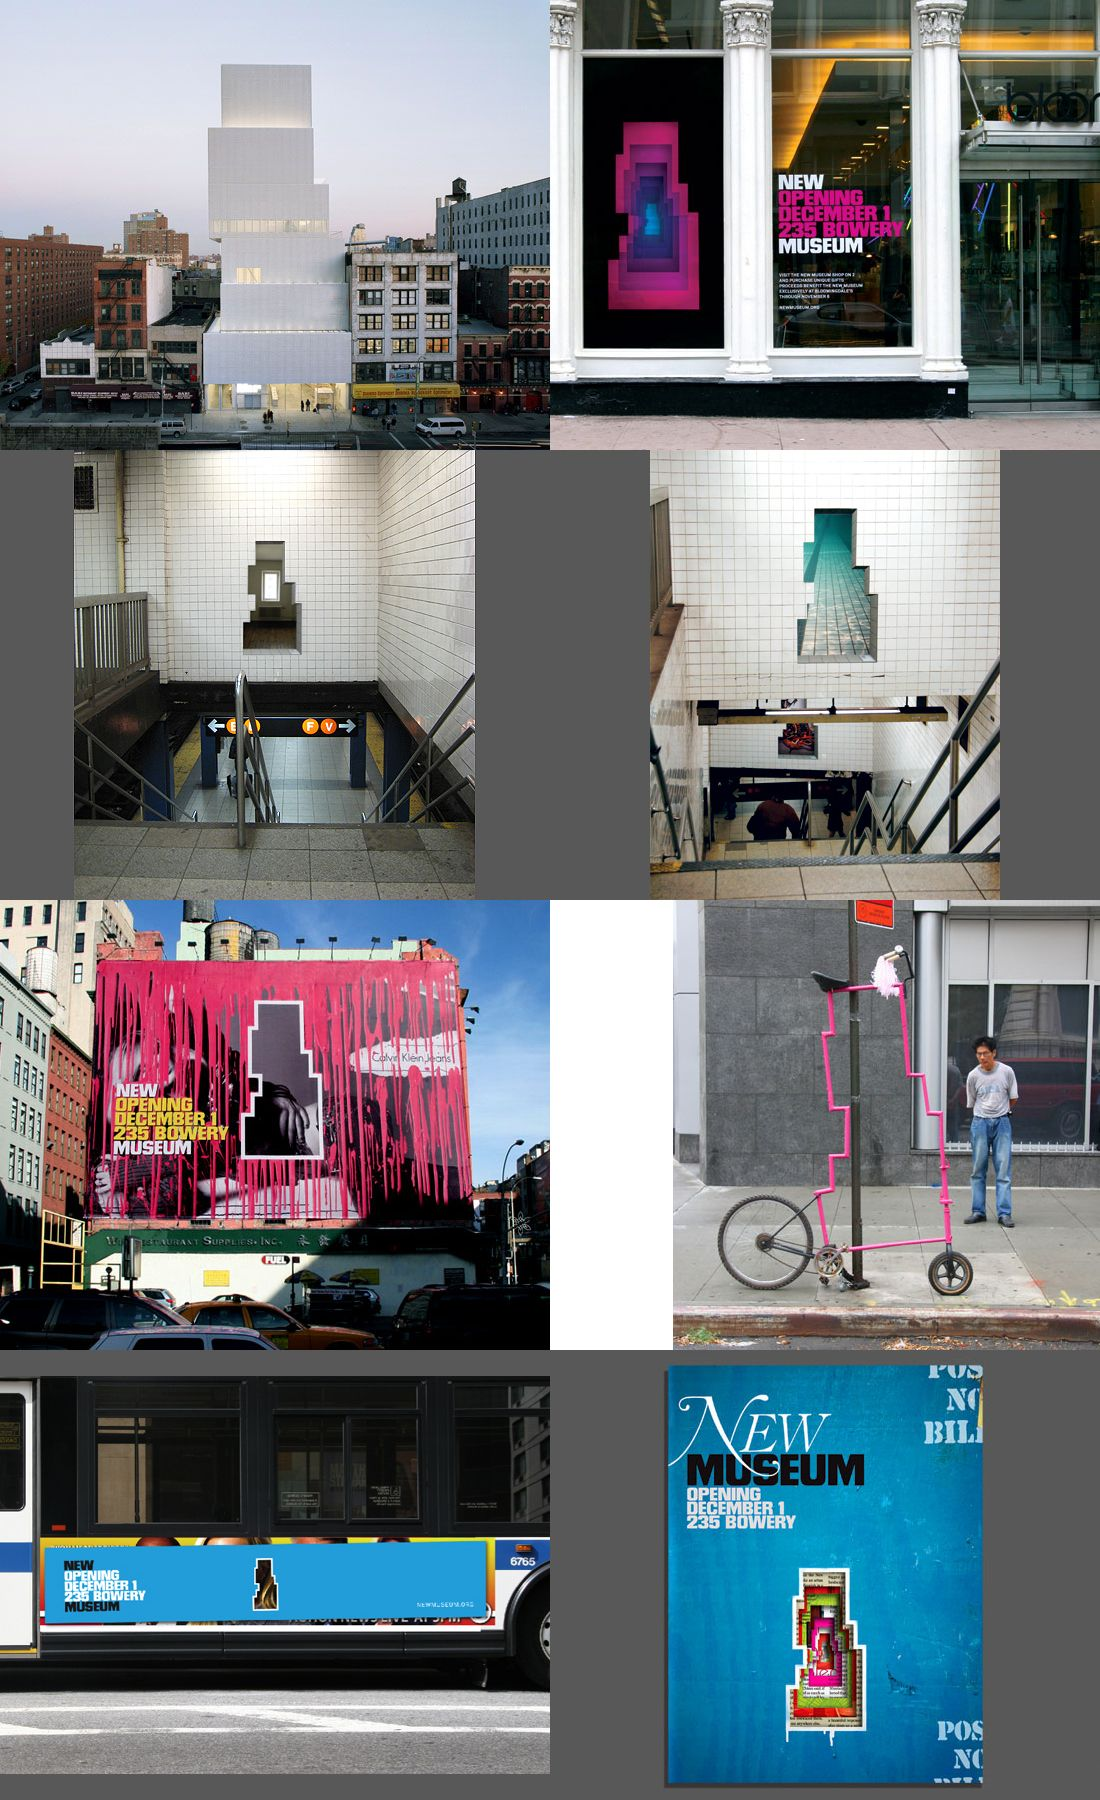 New Museum _ Wolff Olins Visual identity system, New